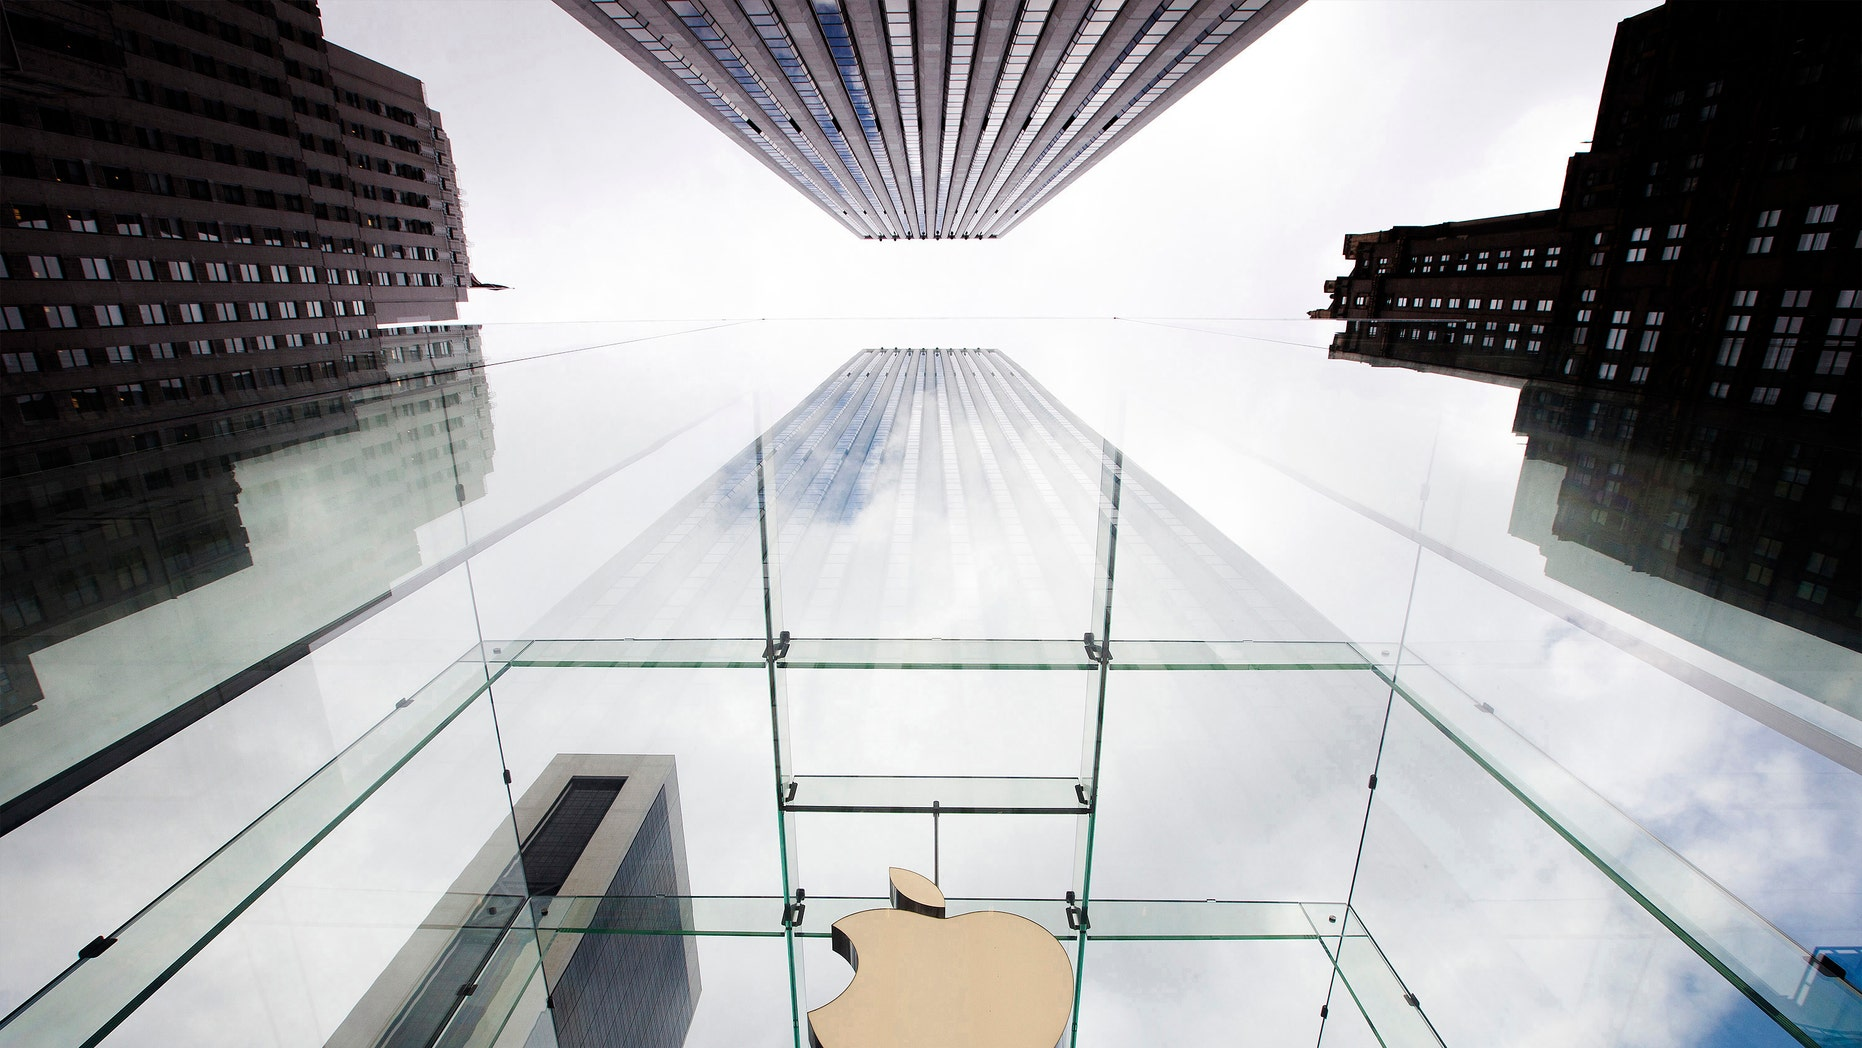 File photo - The Apple logo hangs in a glass enclosure above the 5th Ave Apple Store in New York, September 20, 2012.